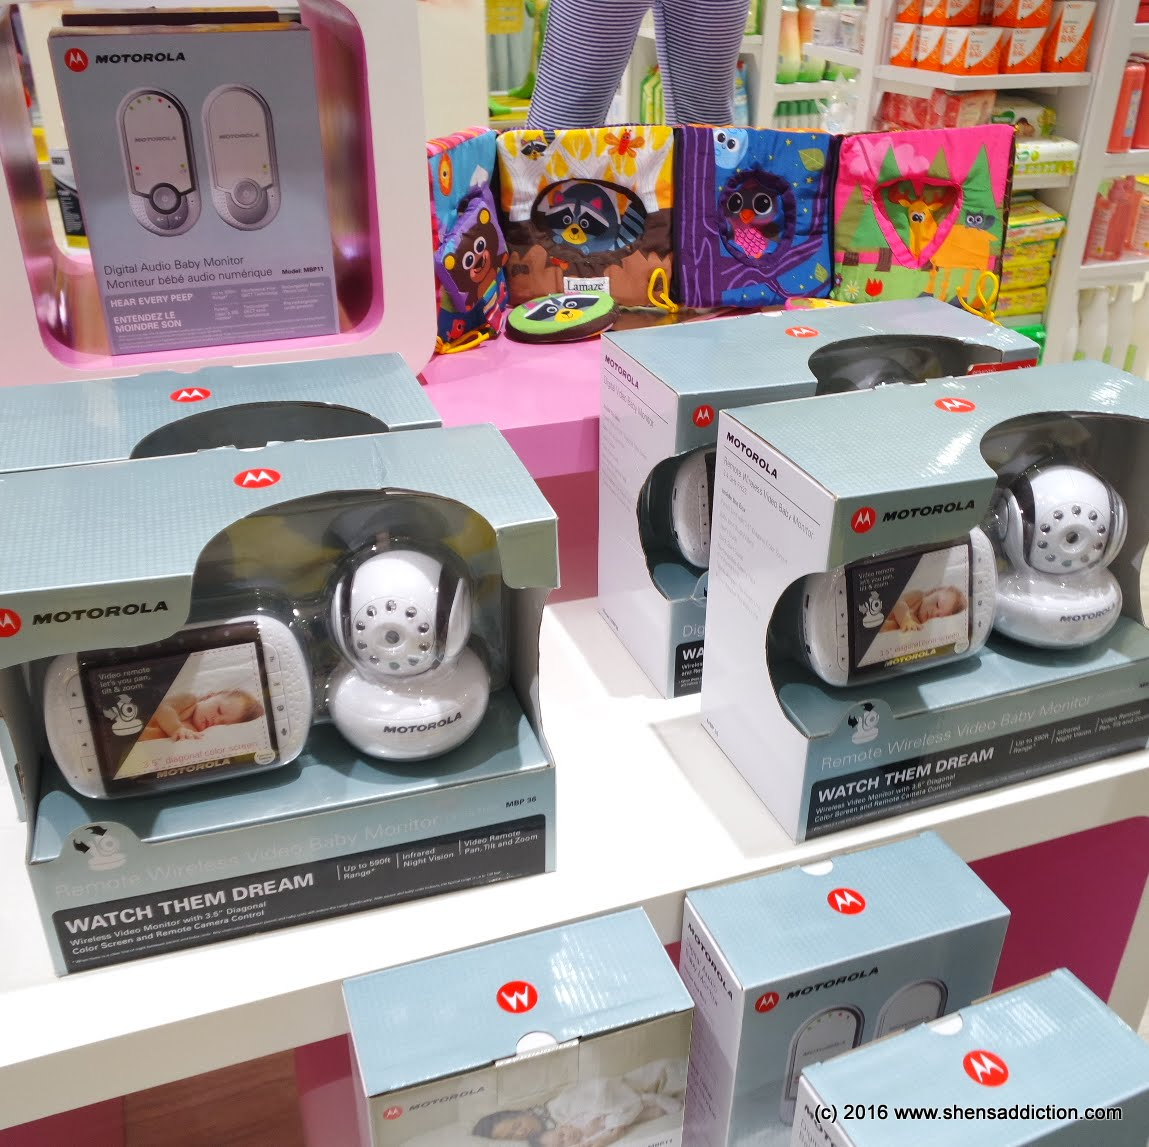 Baby crib for sale at sm department store - Baby Company Offers A Lot Of Fabulous Find This Year Improved And Latest Baby Gadgets Such As The Latest Motorolla Baby Monitor Fancy Nebulizers